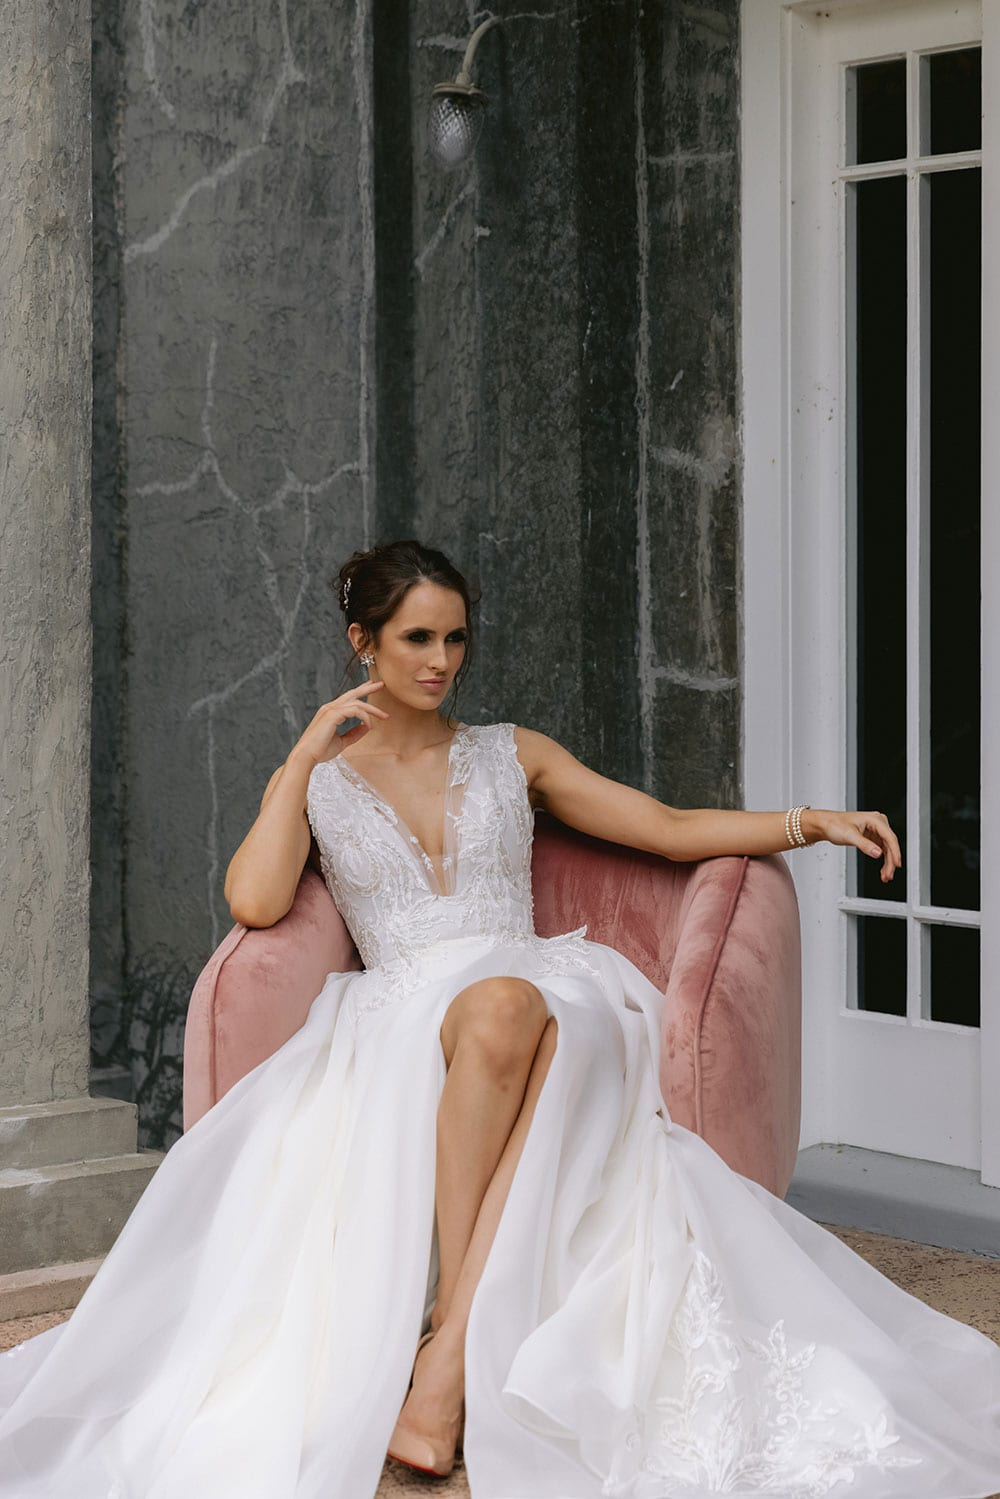 Rema Wedding gown from Vinka Design - This wedding dress has a bold design with a feminine style. Layers of dreamy satin organza with deep folds that open to reveal a split, and structured lace bodice that tapers at the waist to accentuates the figure. Model wearing gown seated with skirt layers and train flowing and split showing leg outside heritage building in Auckland..